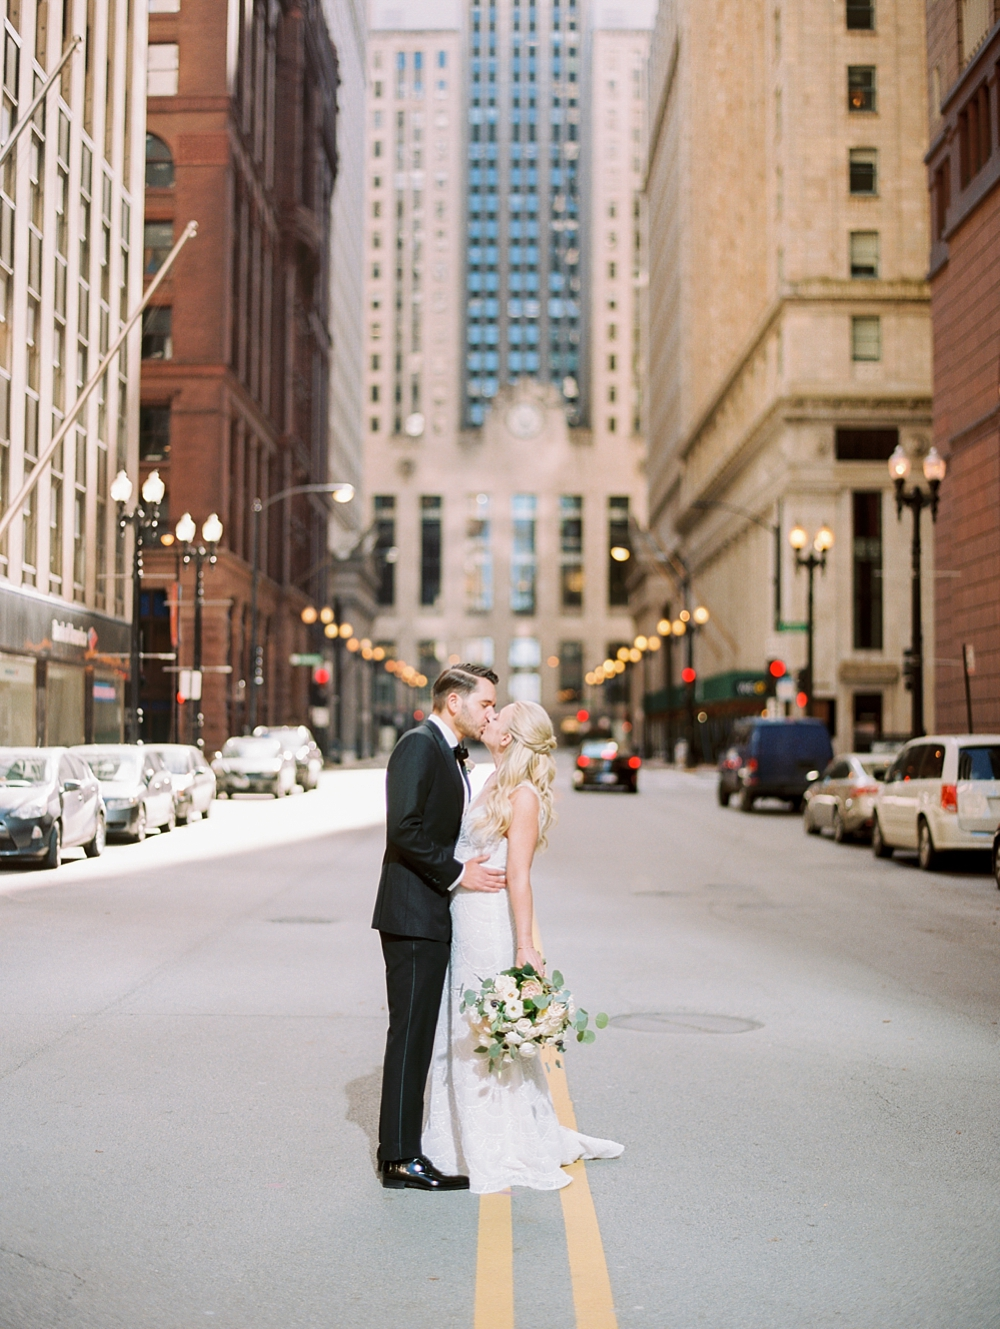 kristin-la-voie-photography-chicago-Wedding-Photographer-kimpton-gray-hotel-20